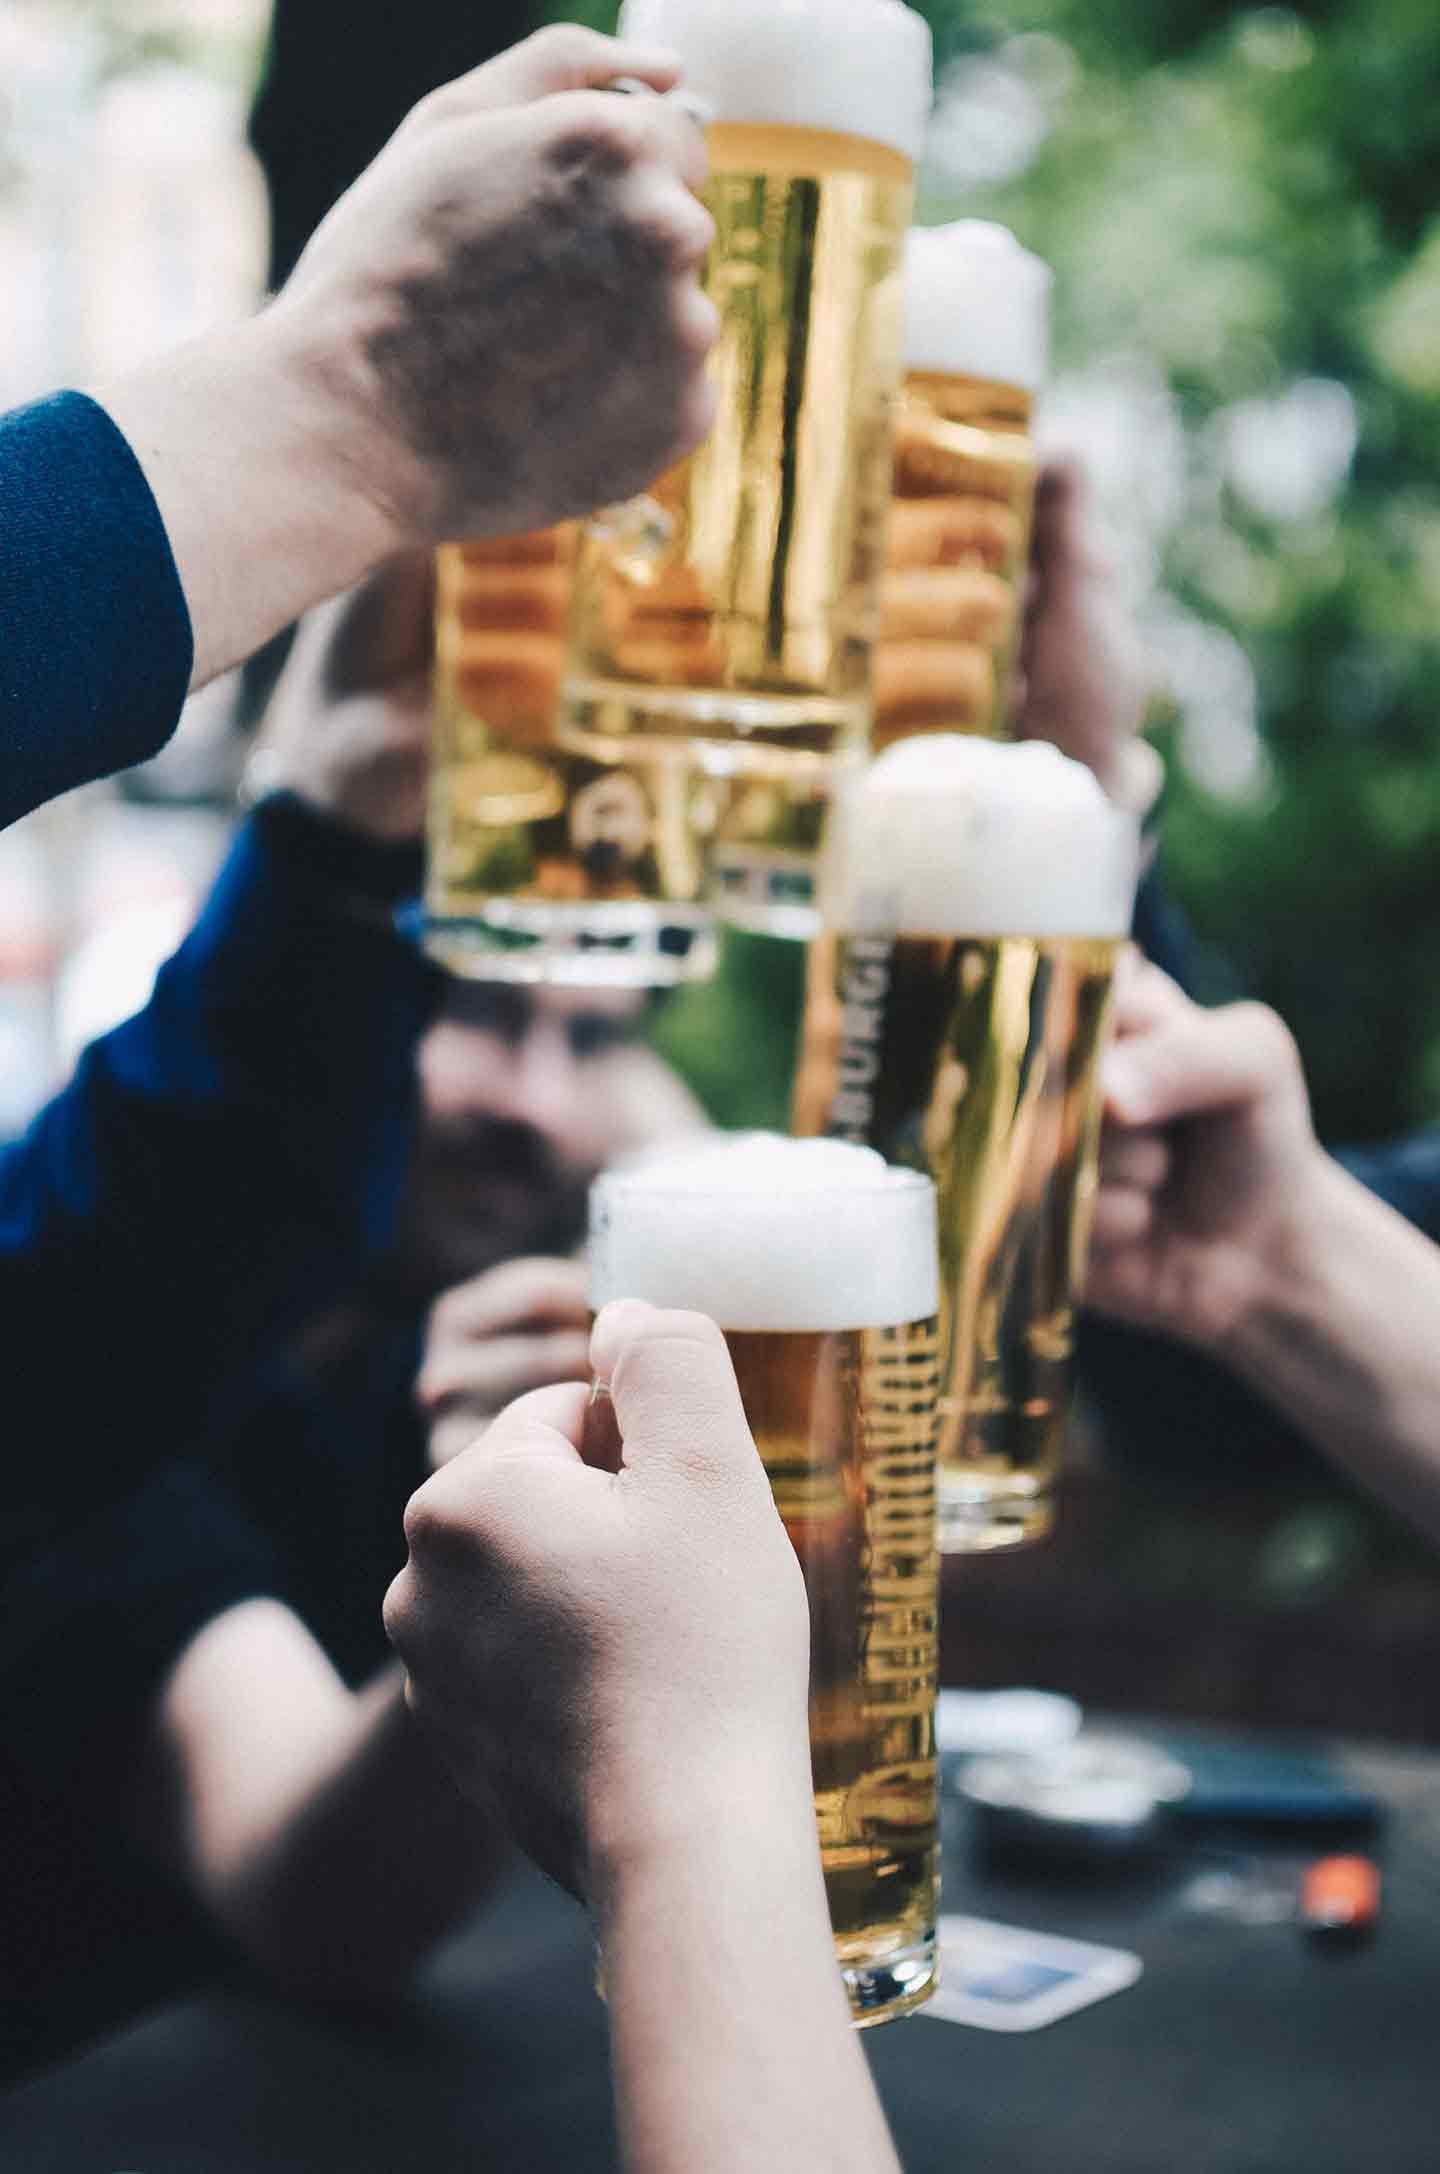 People clink their beer glasses together